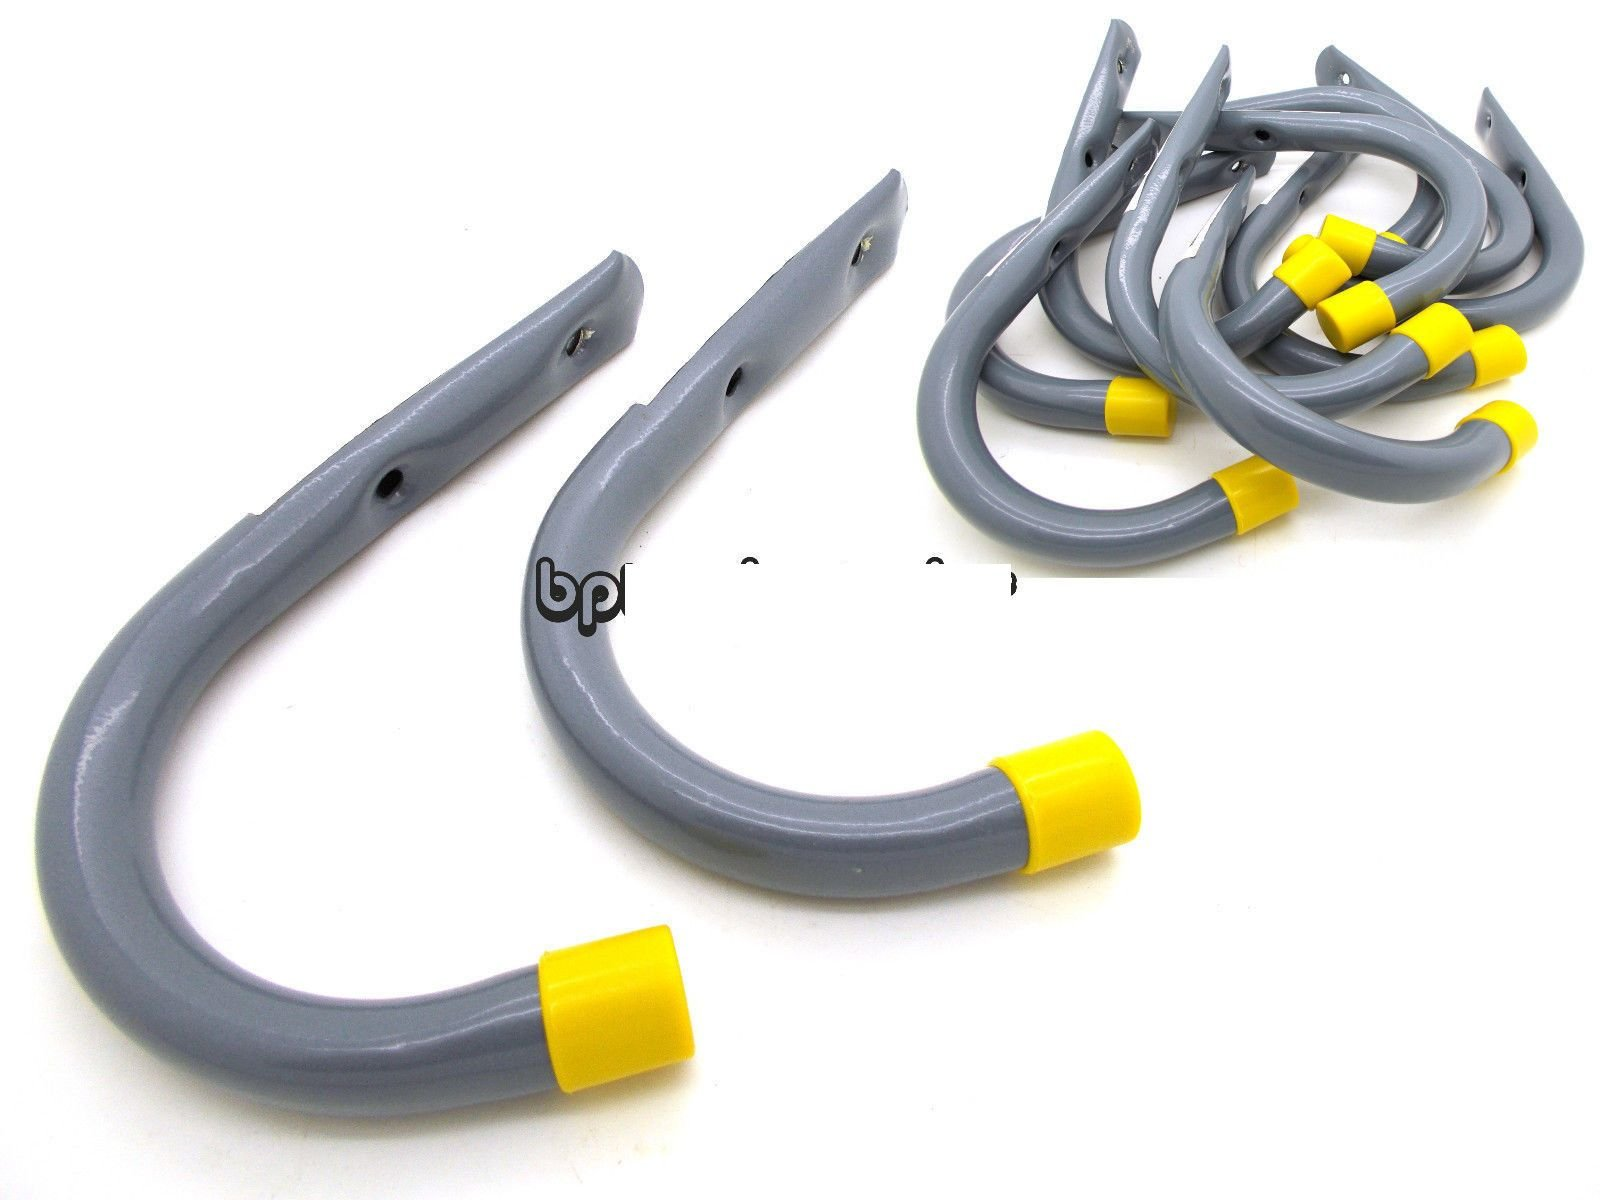 TOP Satisfied 20x PACK 6'' GIANT Storage Handy Hanger Hooks Garage Home/Shop Bicycles Hoses